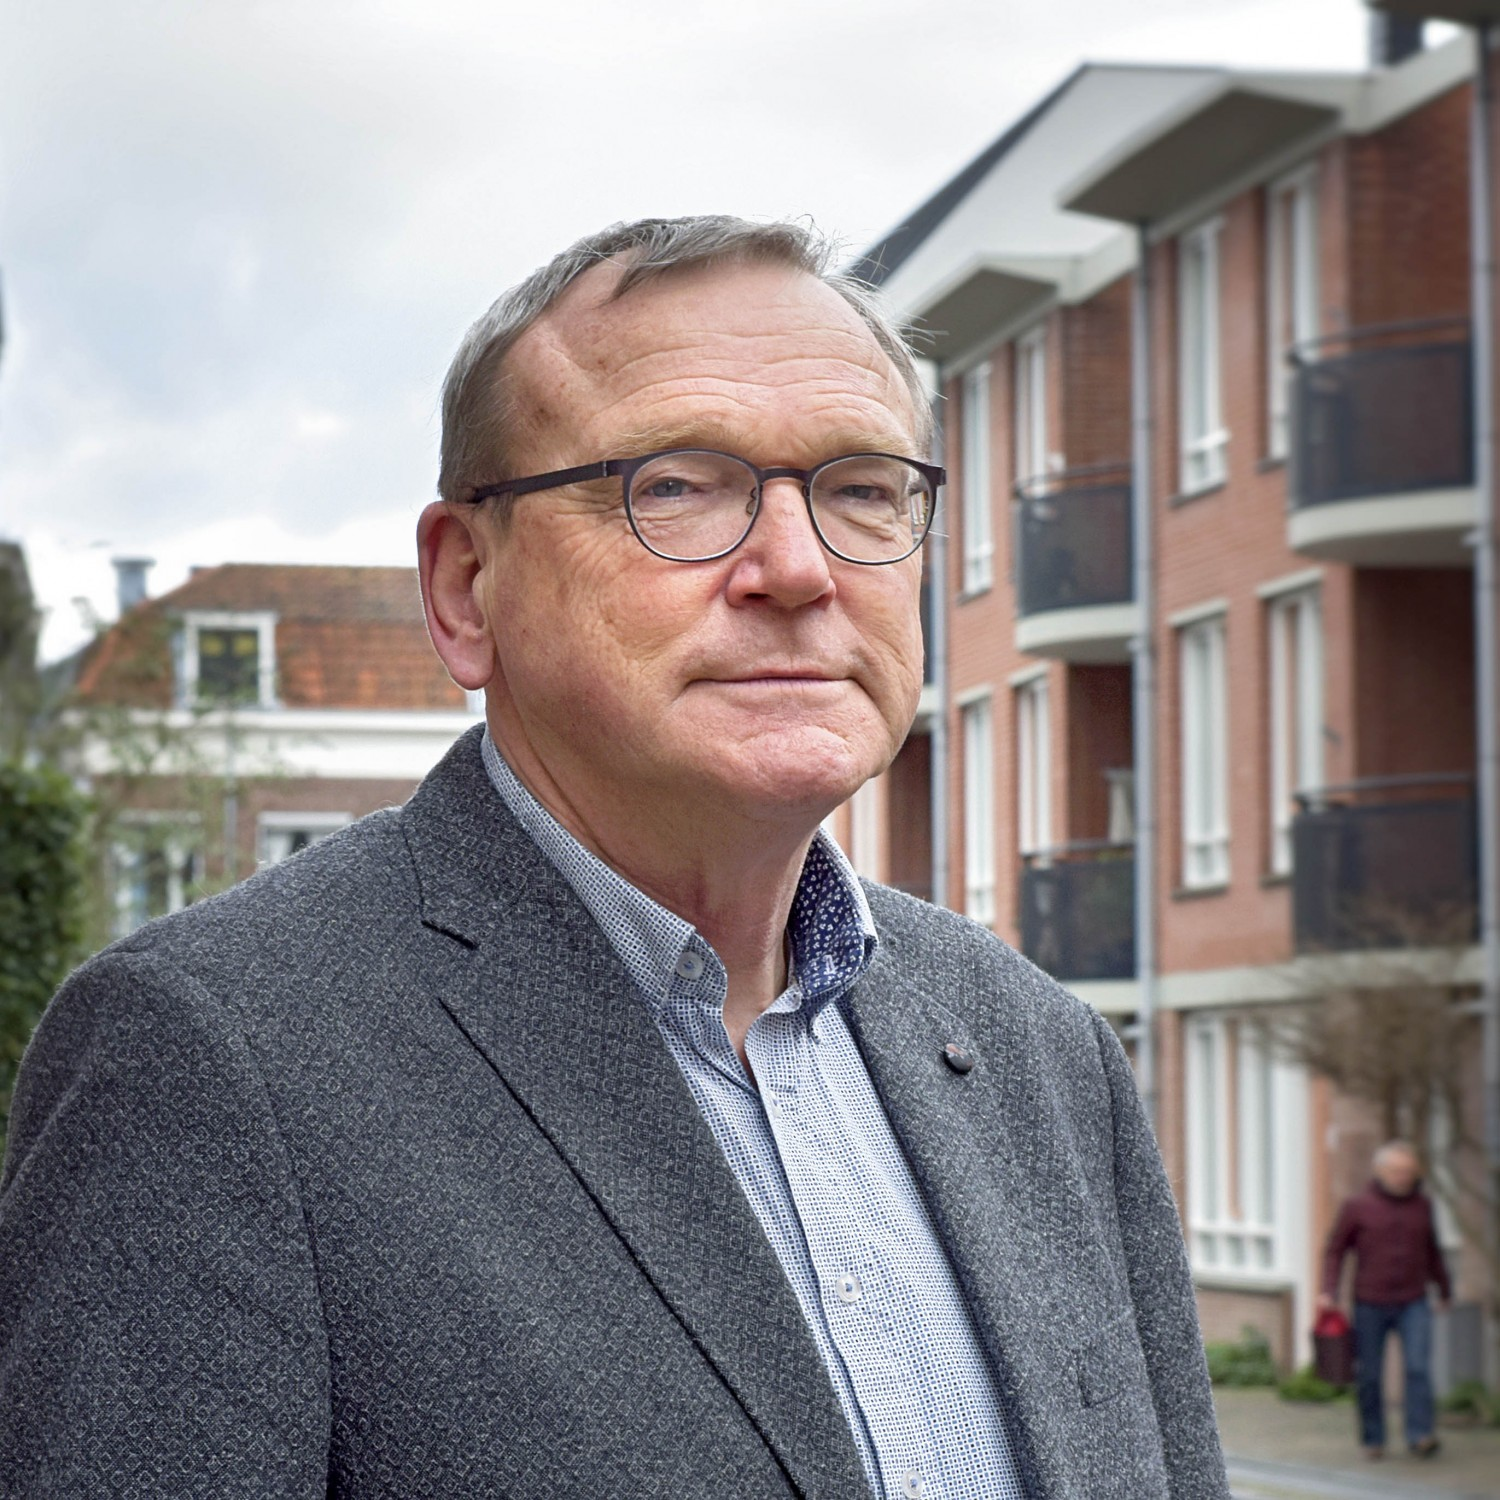 Martin Klooster